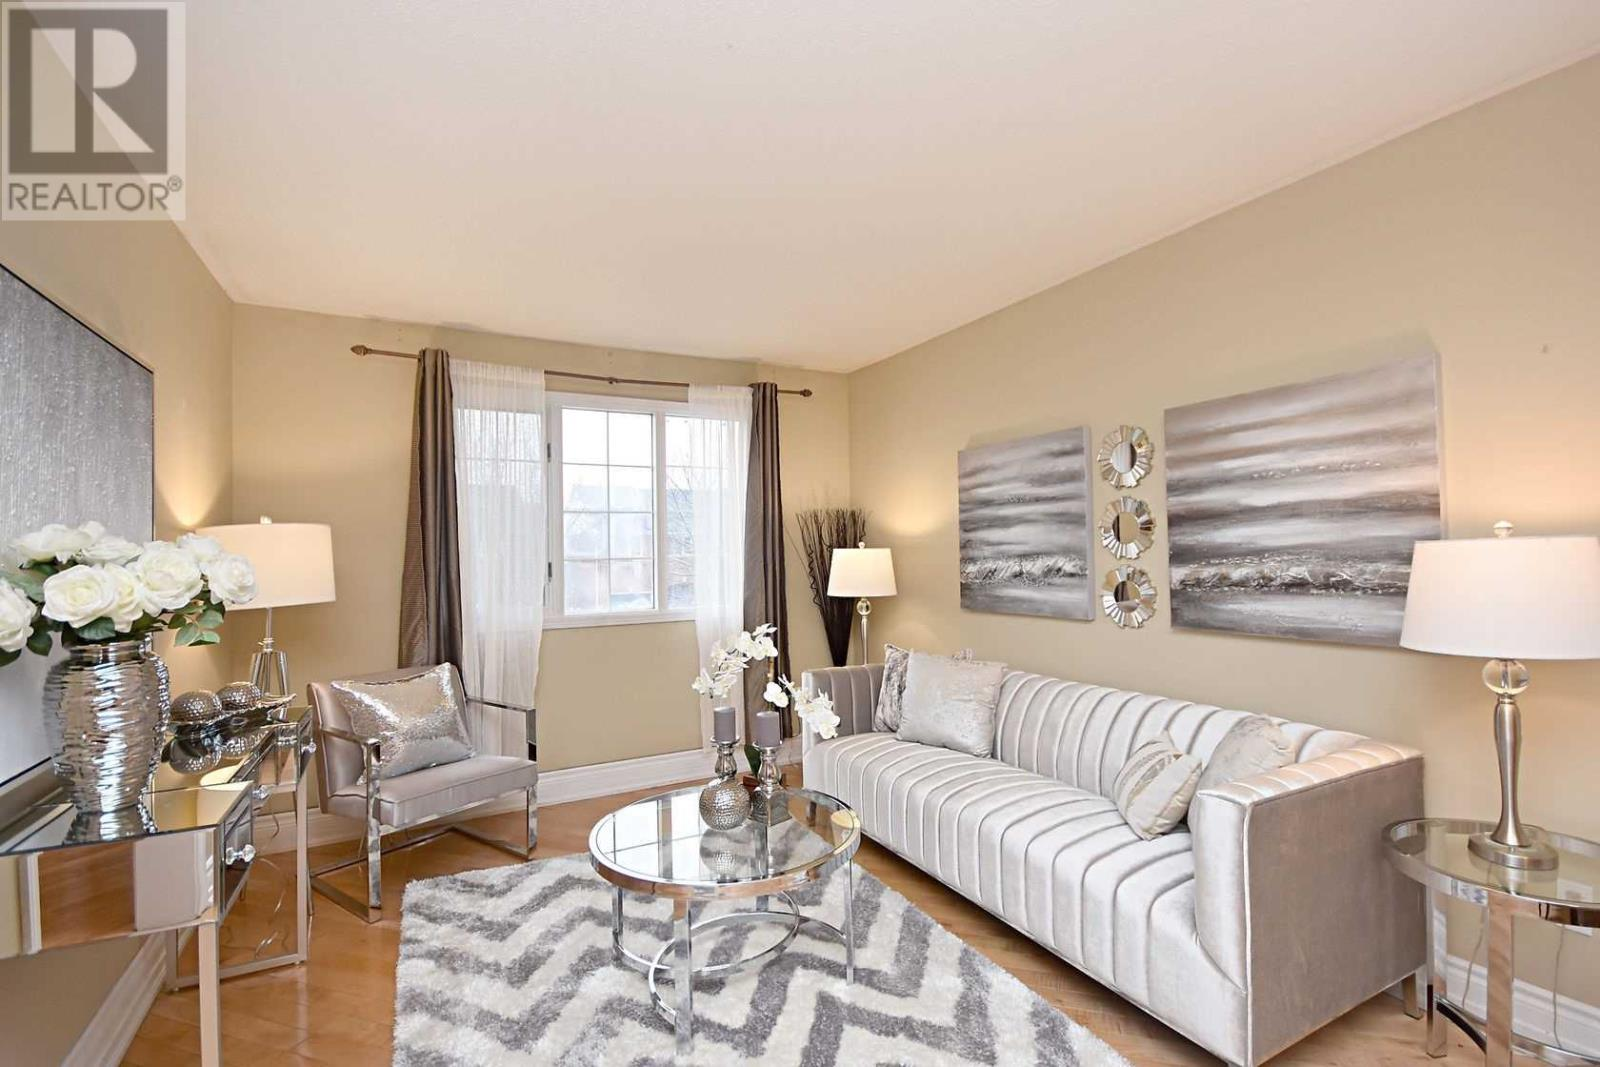 354 Howell Rd, Oakville, Ontario  L6H 5Y1 - Photo 4 - W4675254